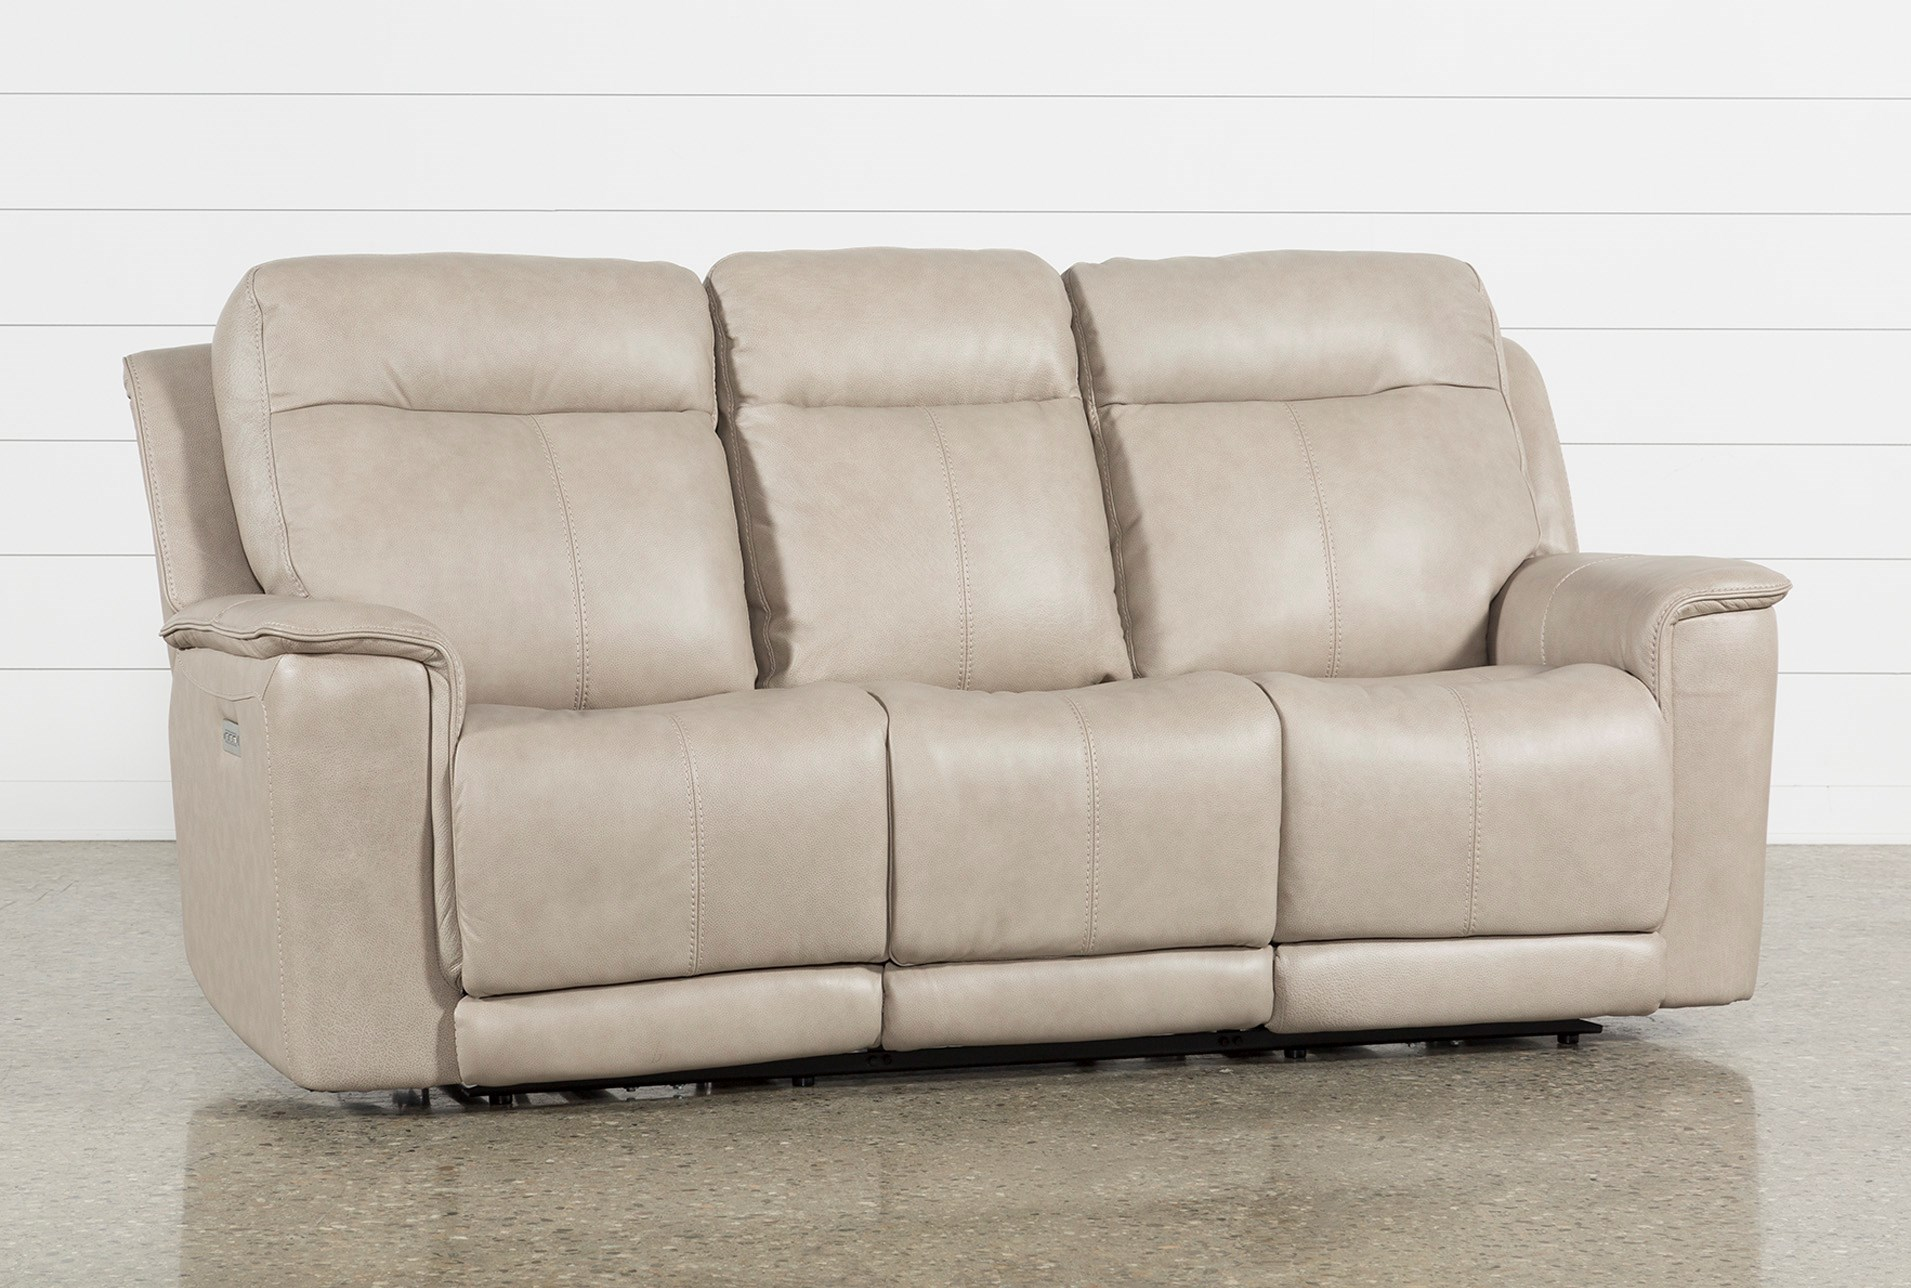 Walsh dove power reclining sofa w power headrest lumbar usb qty 1 has been successfully added to your cart